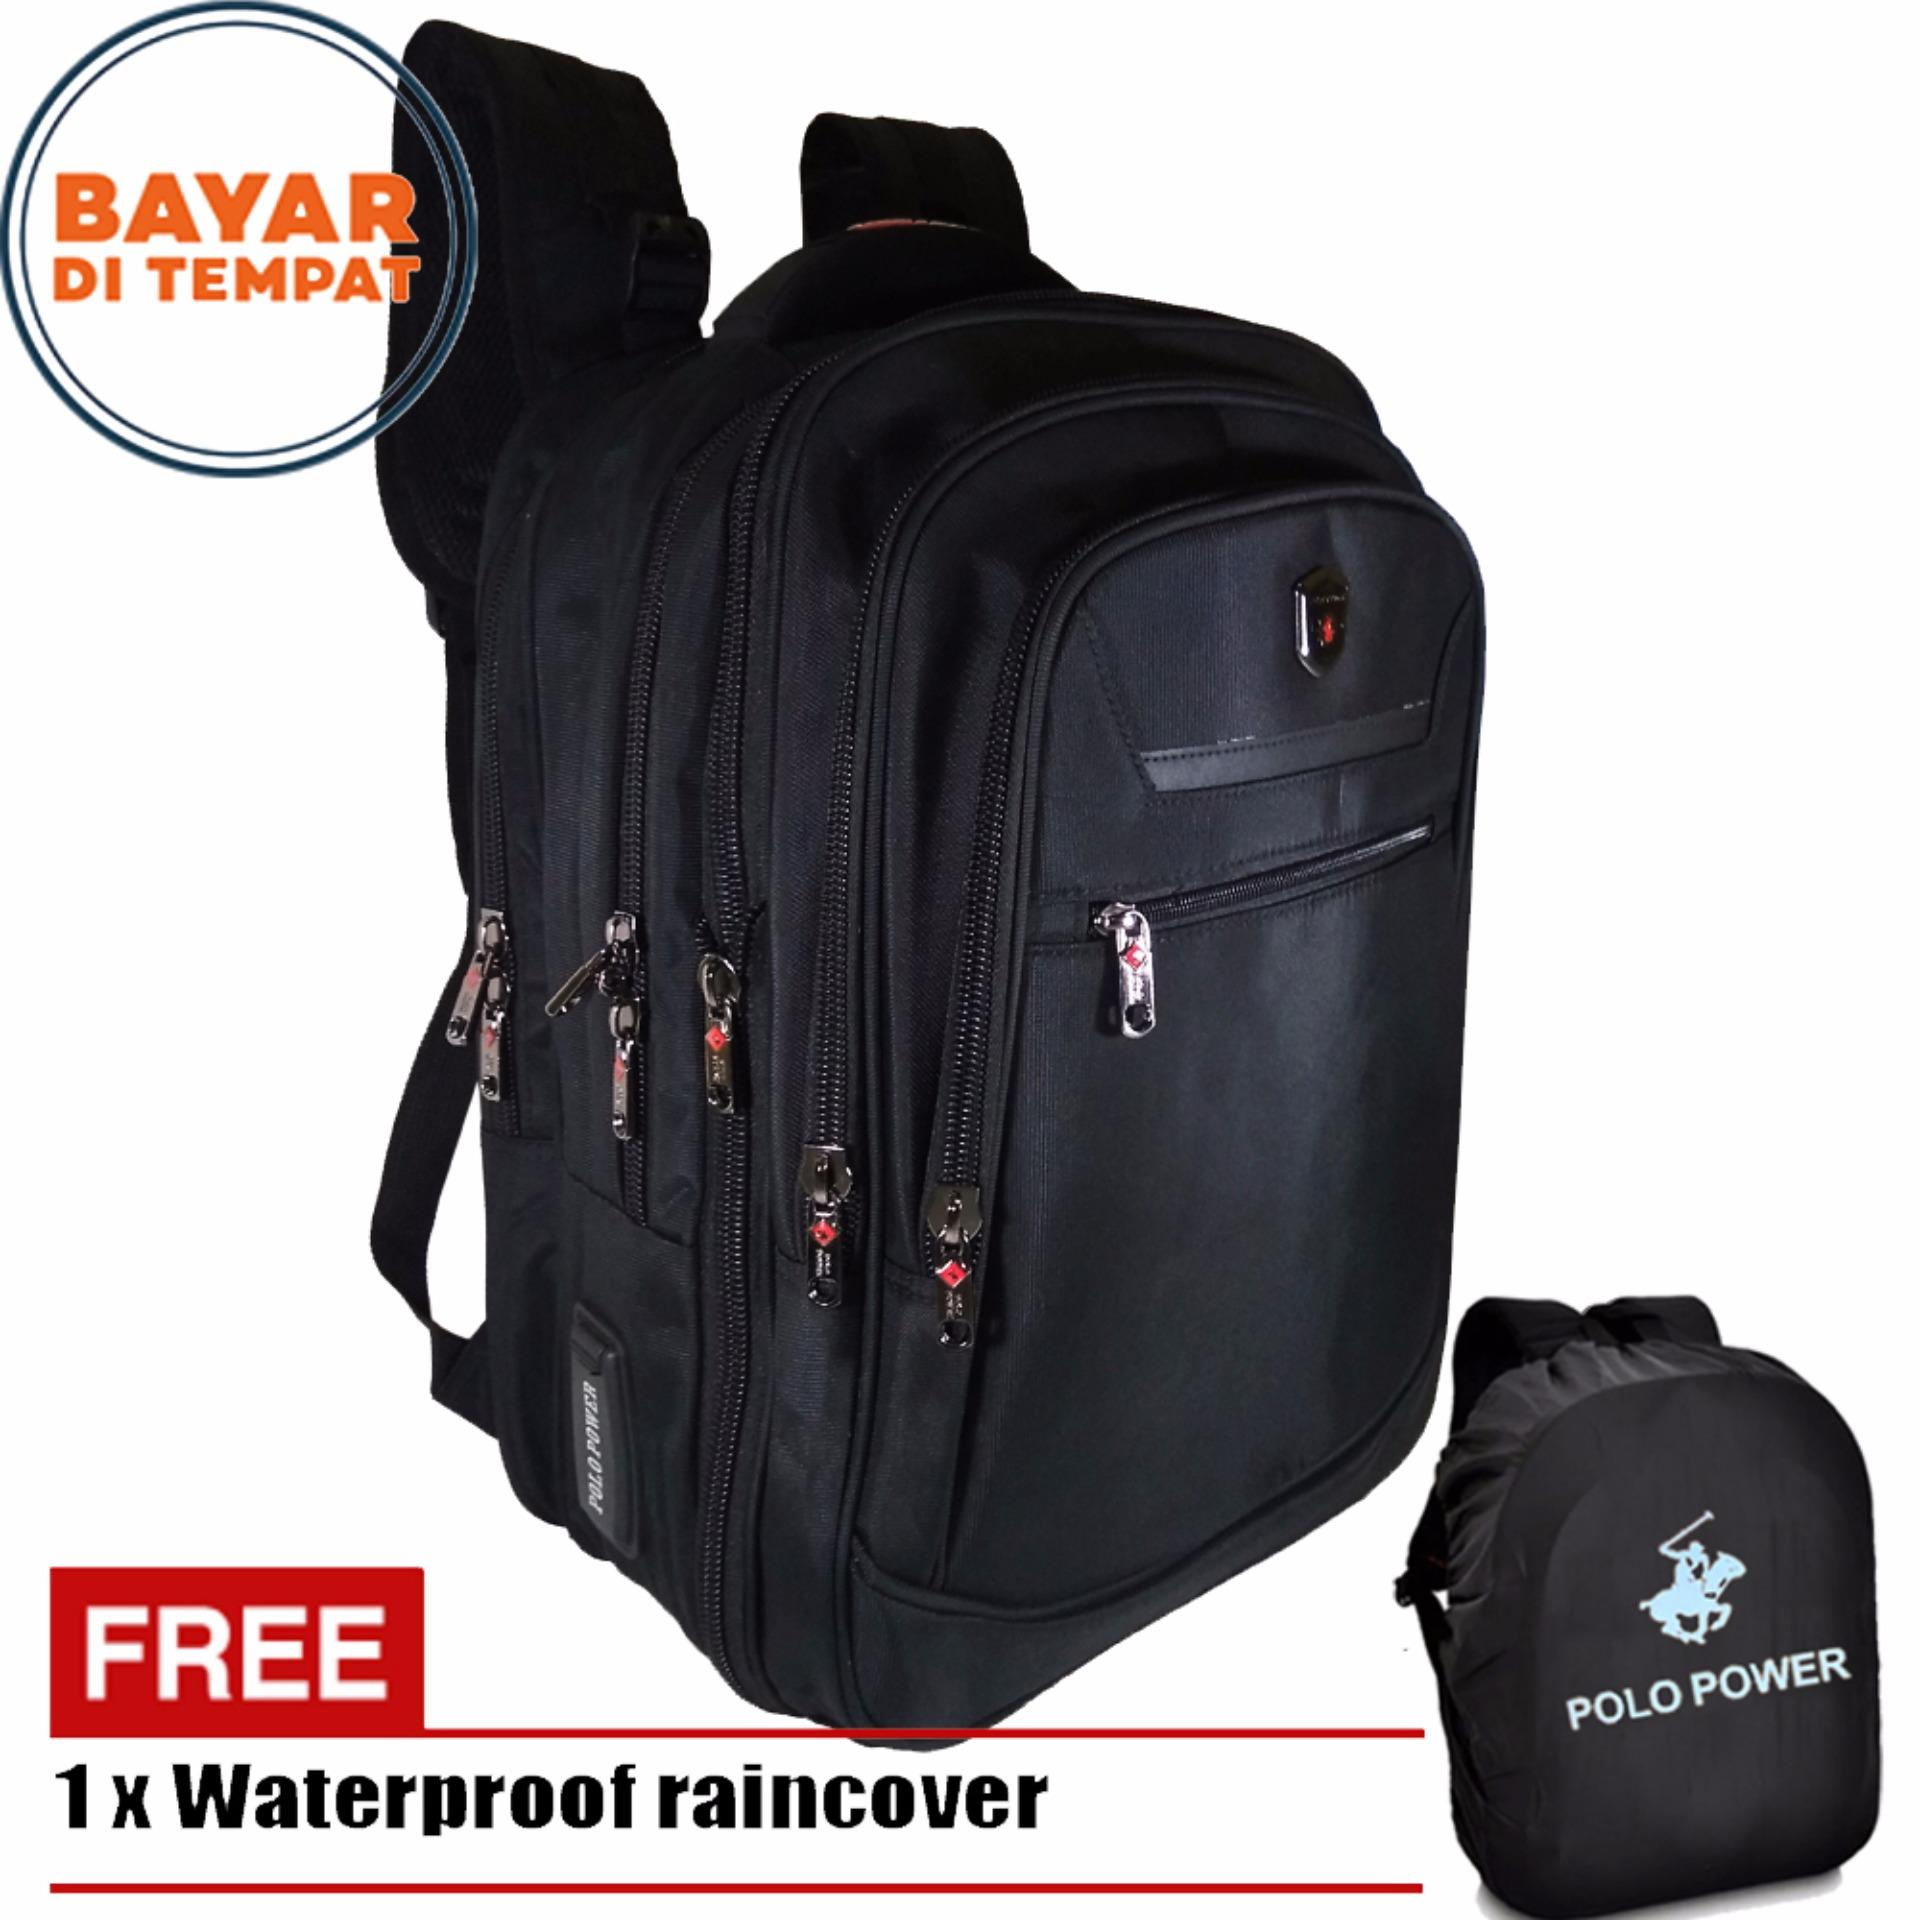 Diskon Polo Power Tas Ransel Pria 18 Inchi Expandable 185003 Highest Spec Polo Backpack Import Original Black Raincover Akhir Tahun